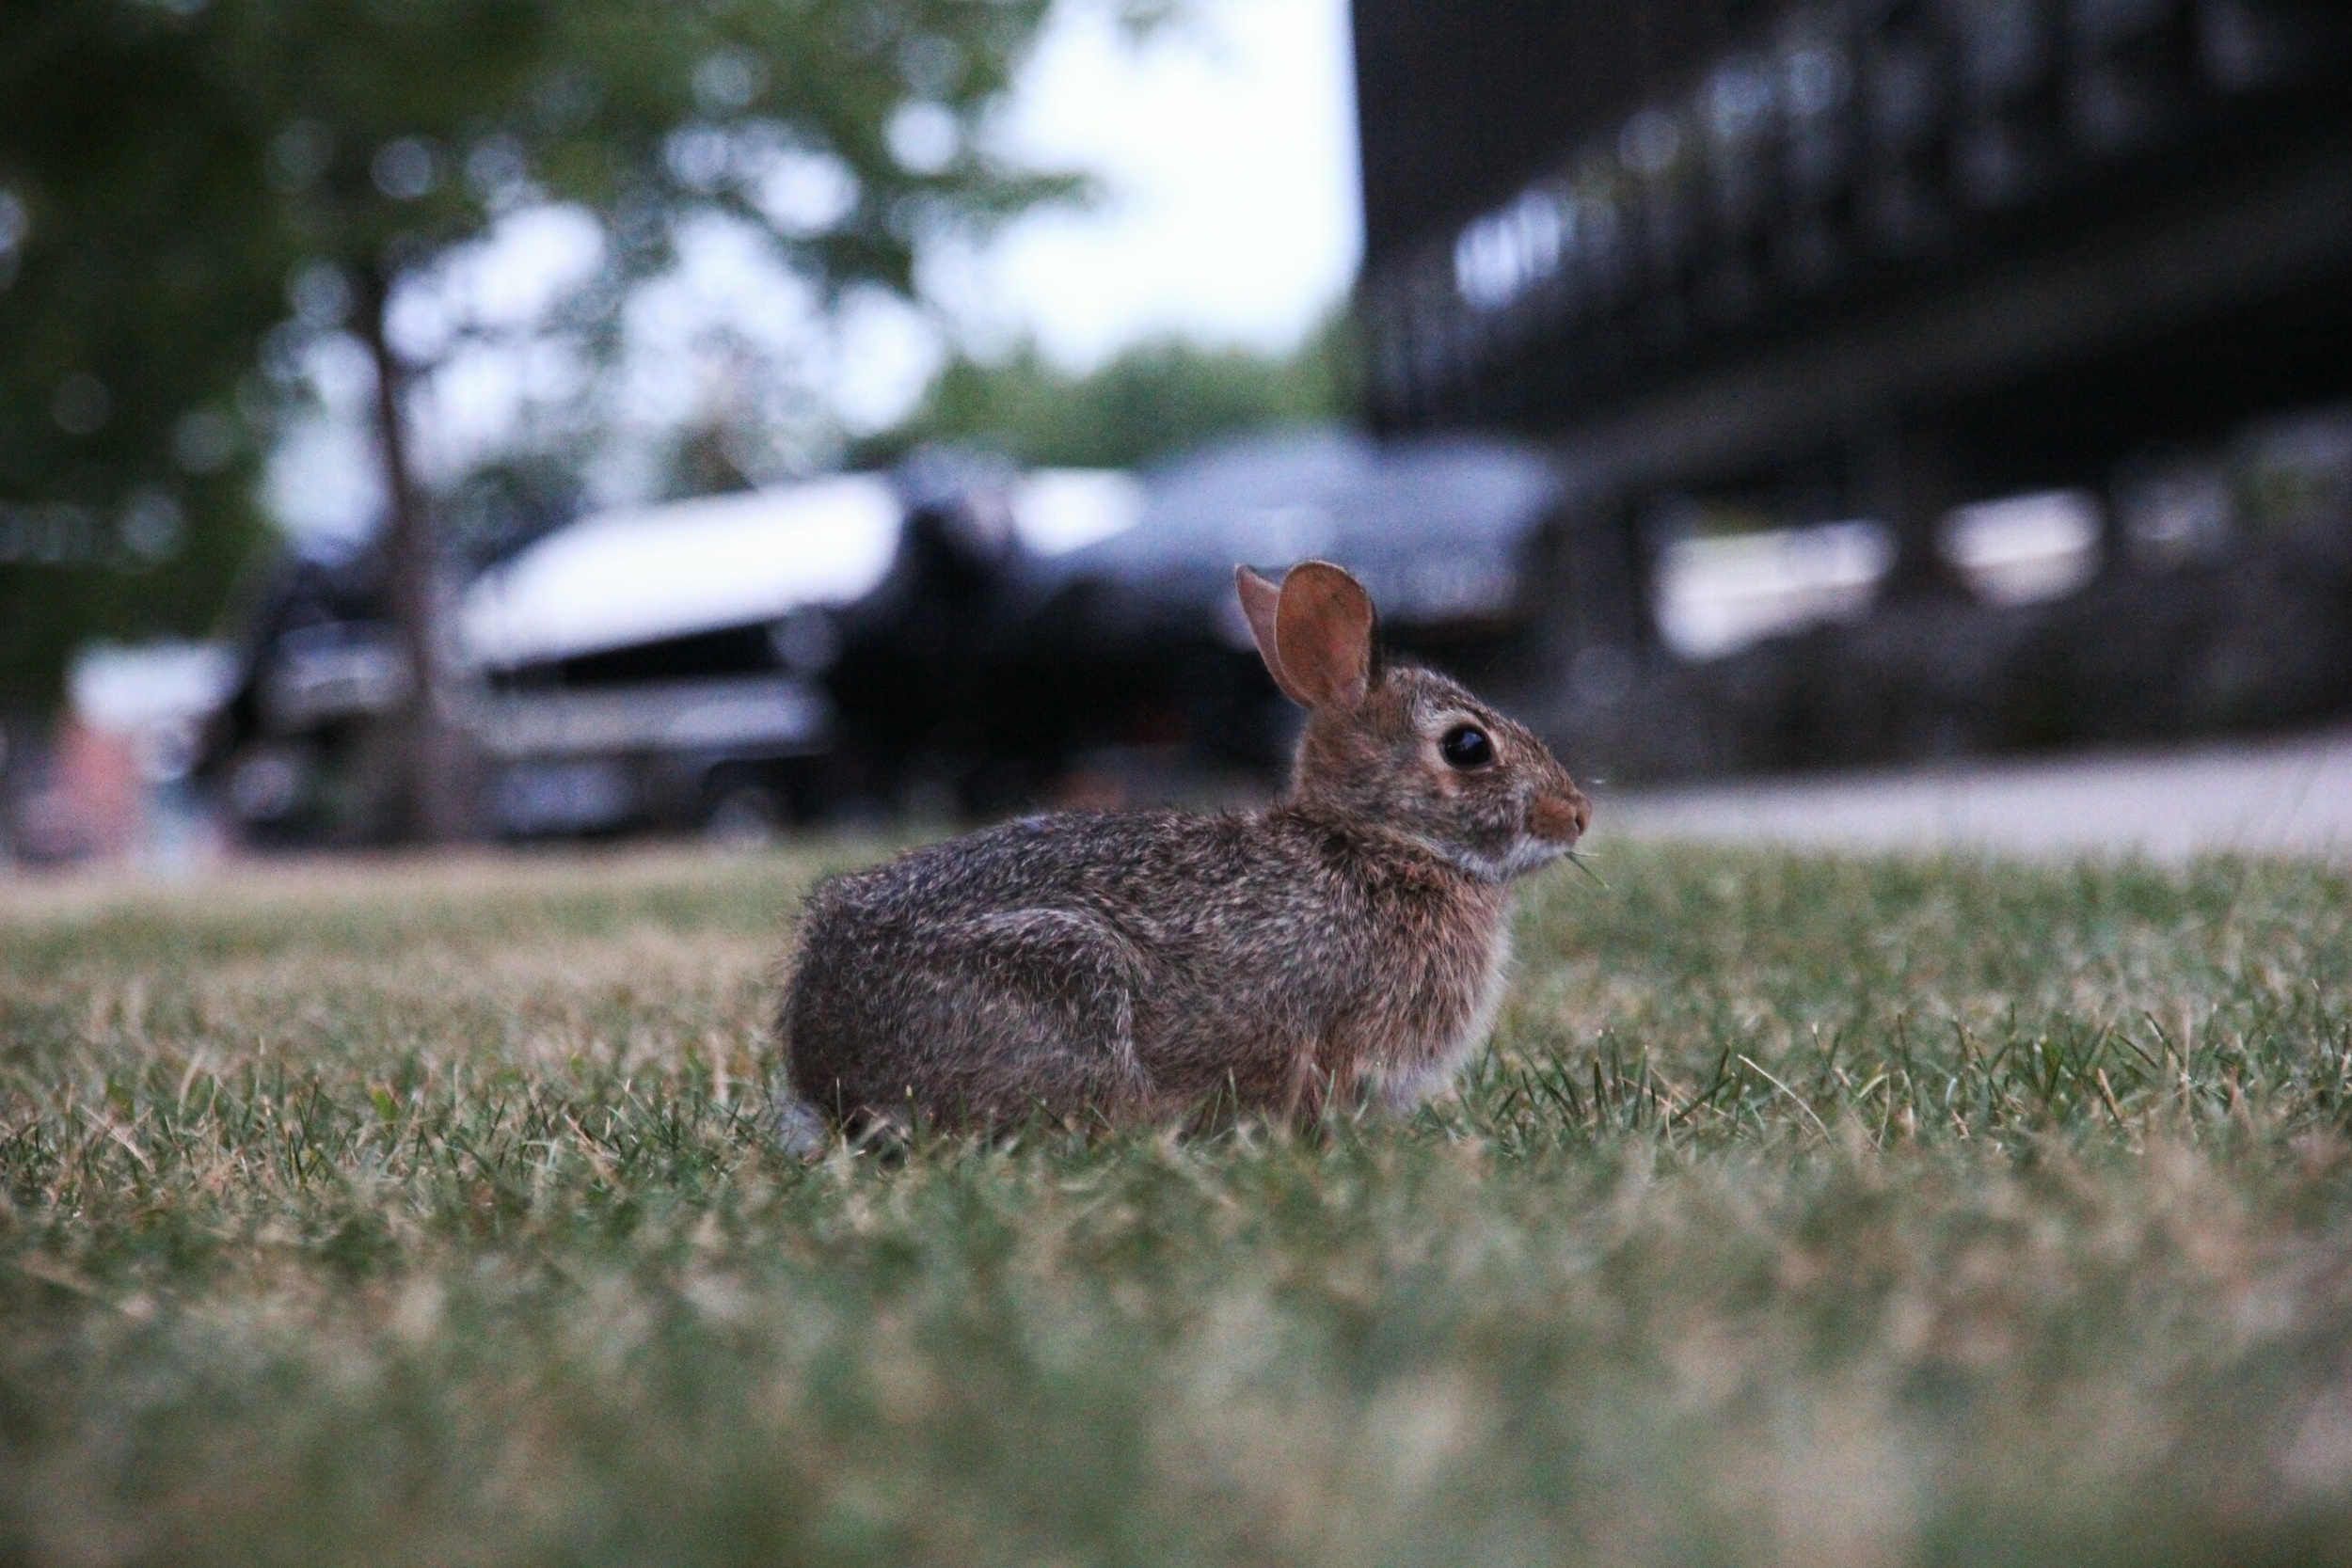 Baby bunny in Buffalo.  Saw it while walking along Erie St.